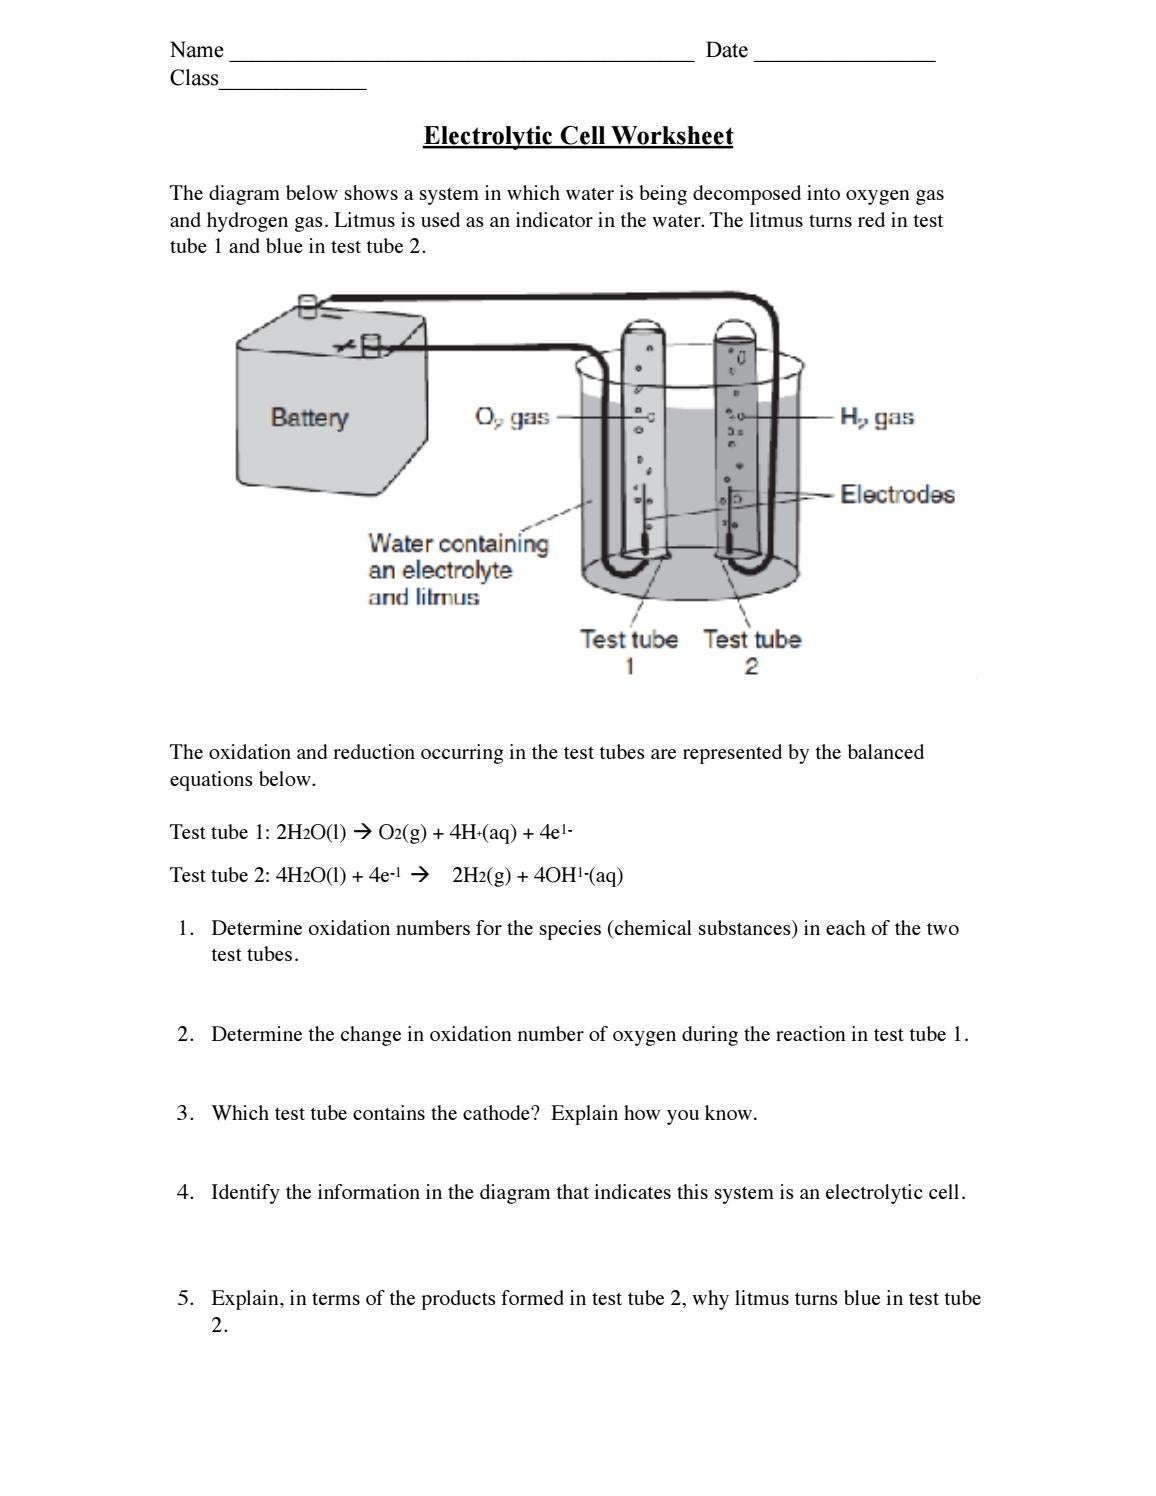 Electrolytic Cell Worksheet By Olivia Hunter Issuu